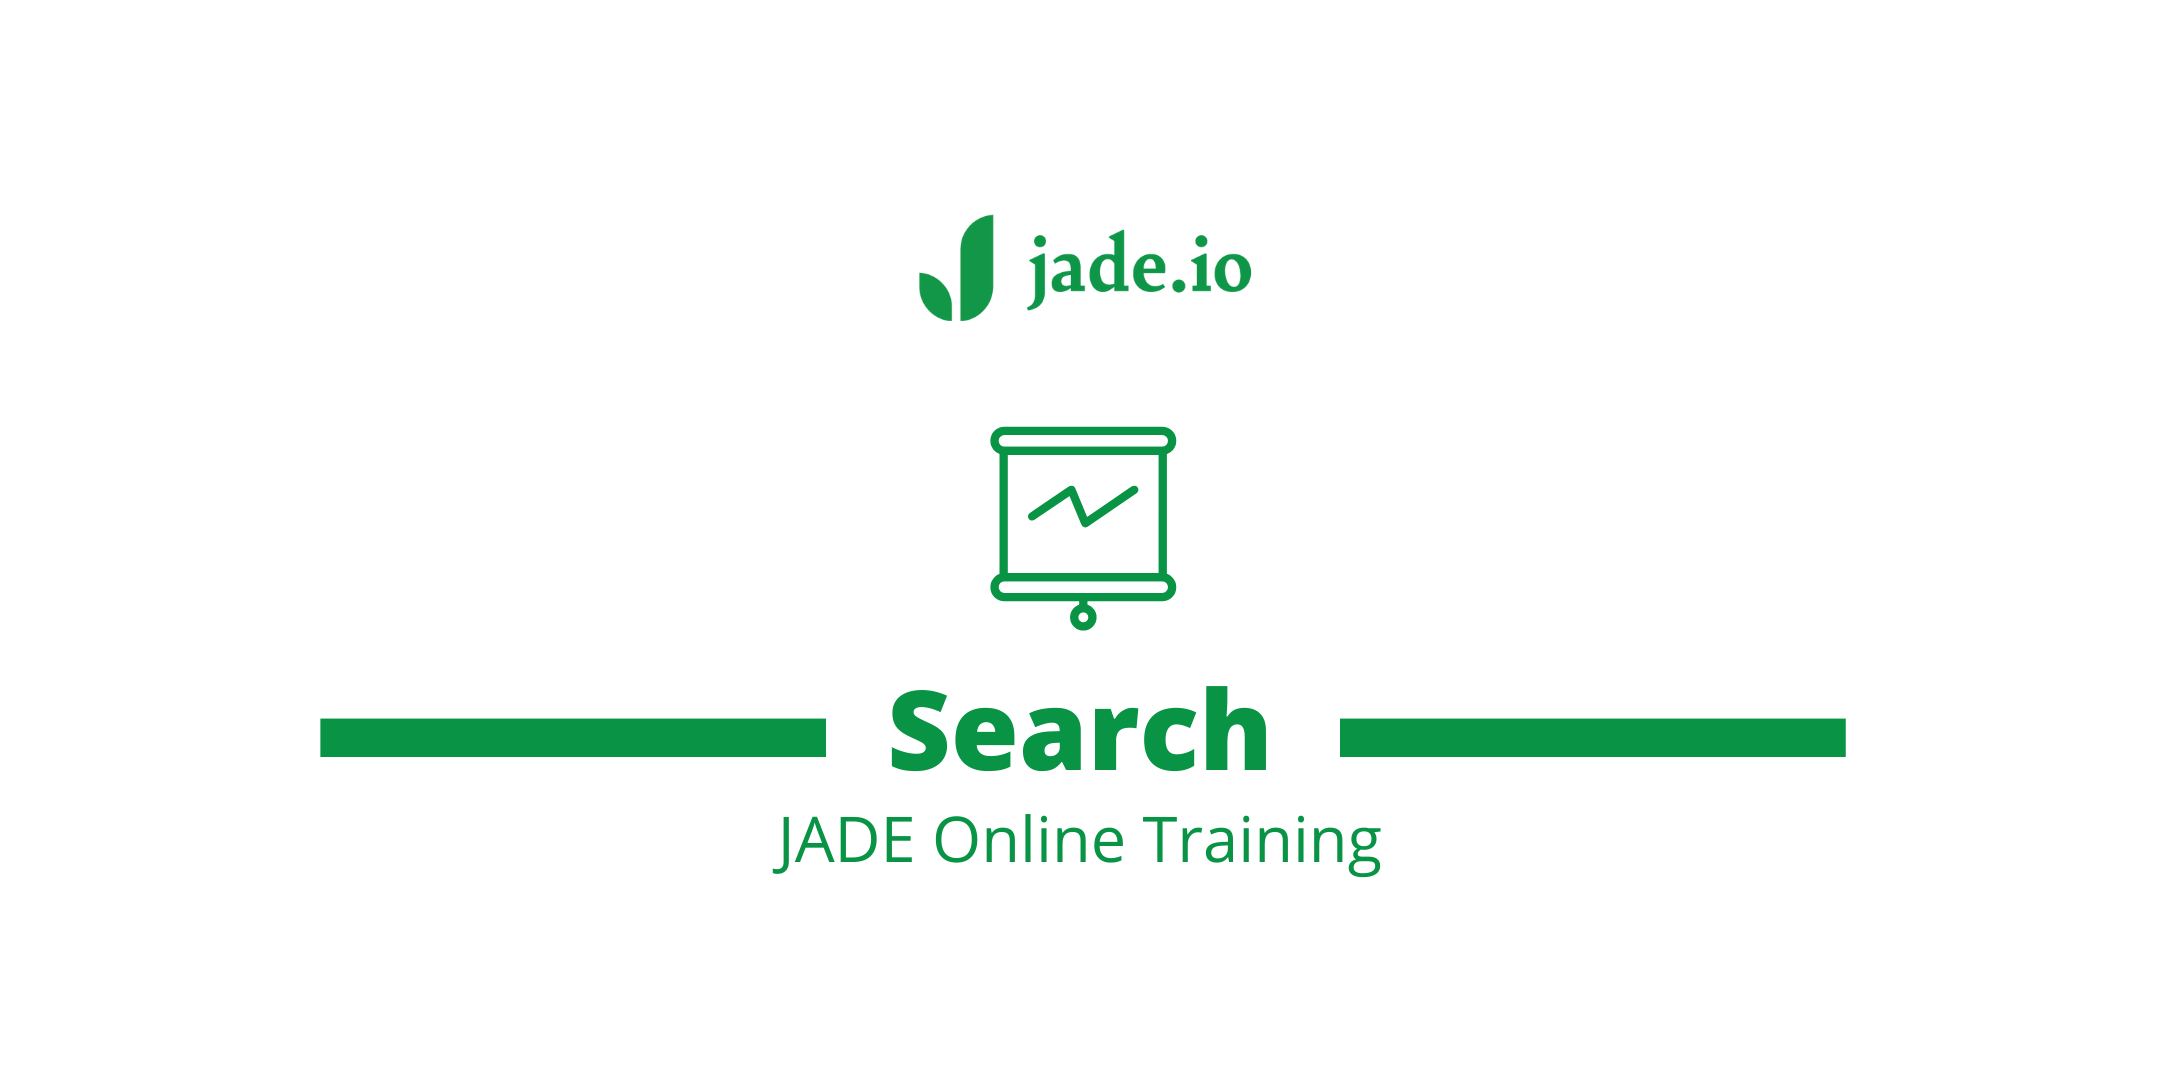 jade.io search training banner with jade logo, search heading and JADE online training